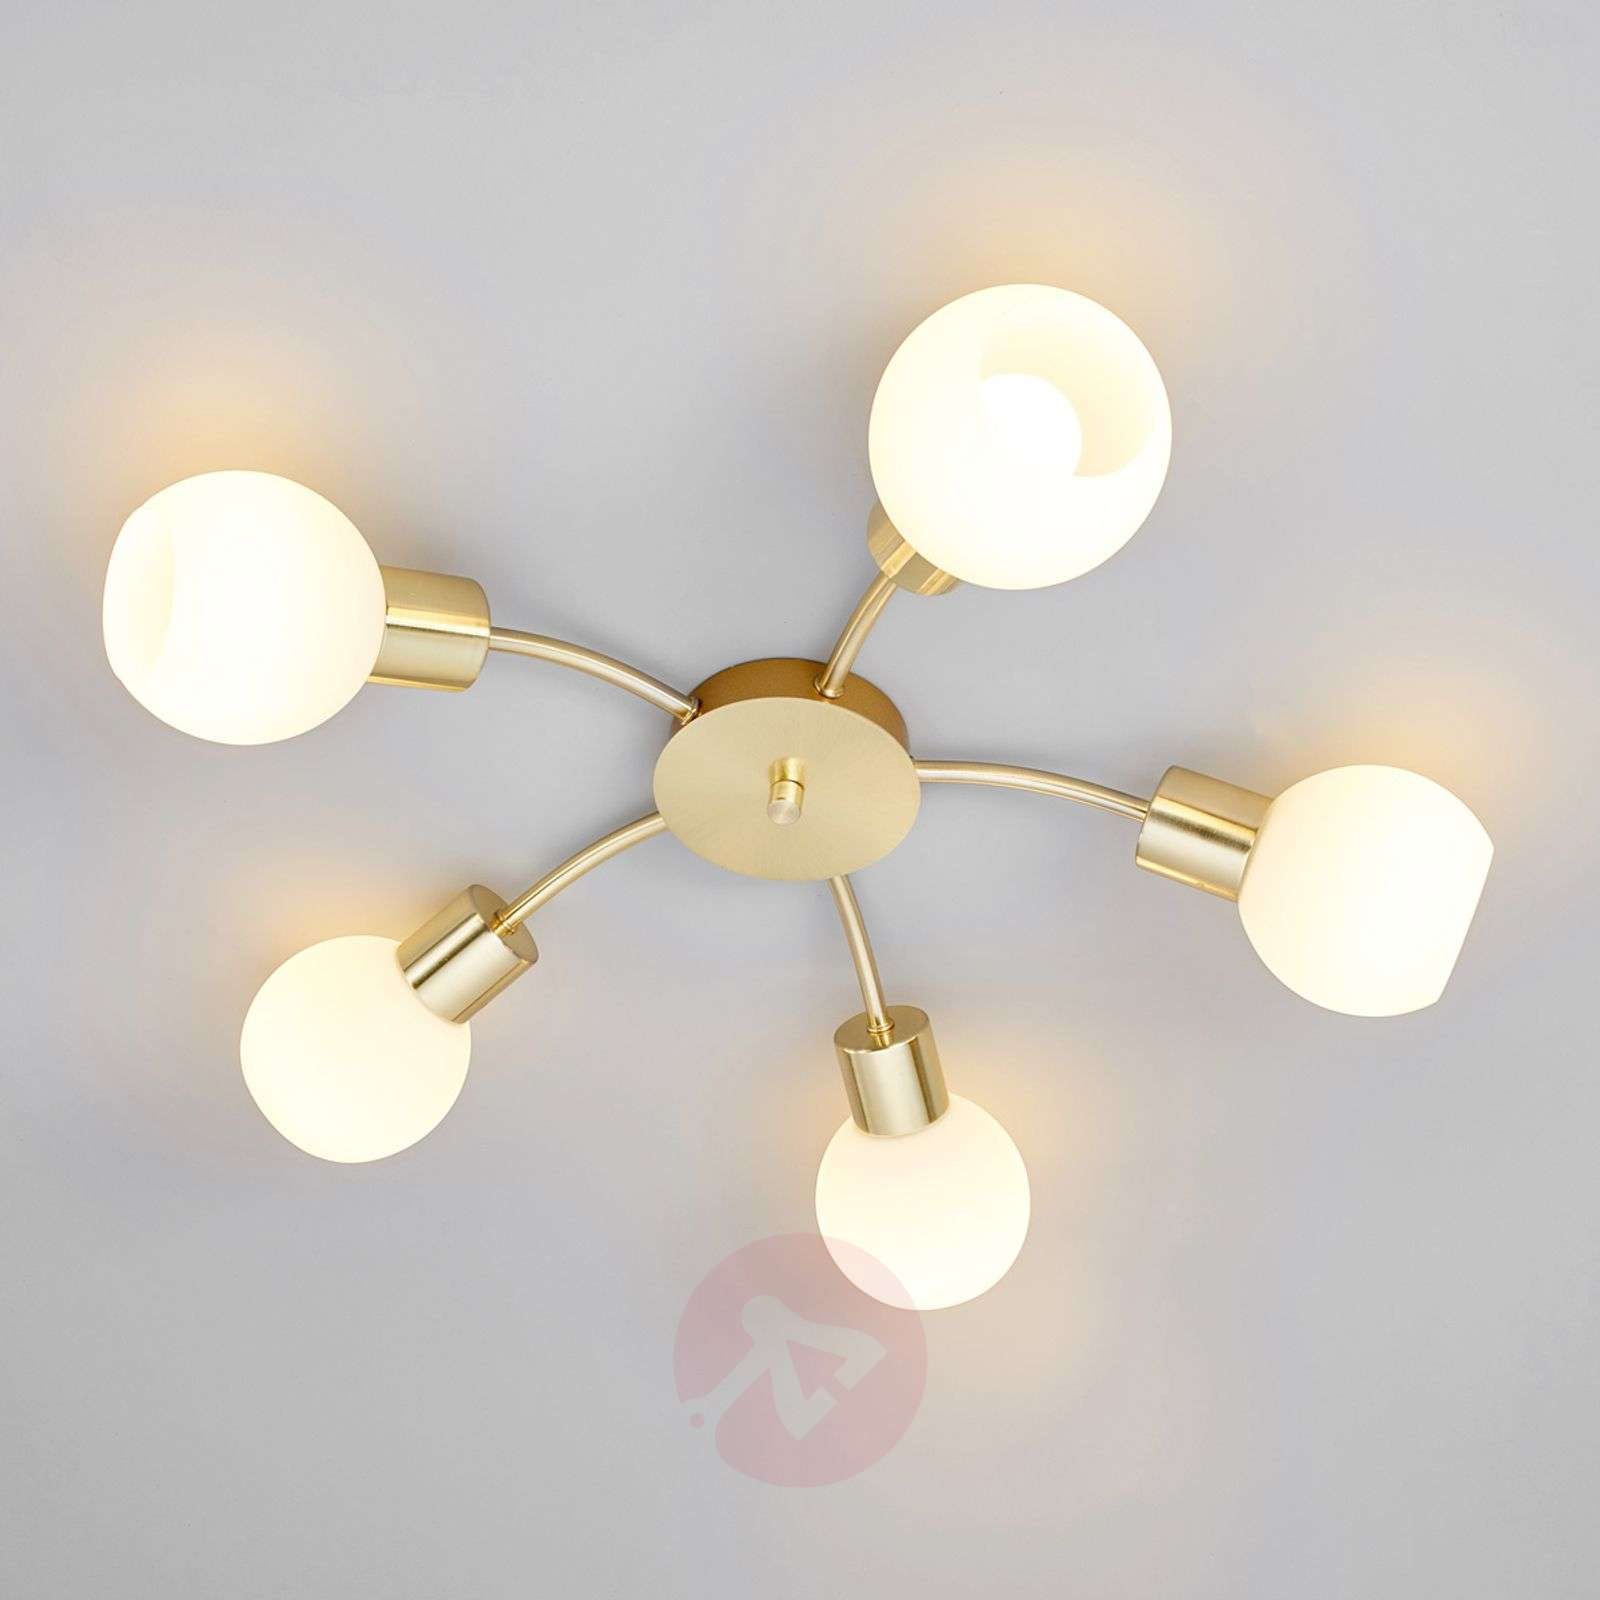 Led Ceiling Lights Brass : Elaina led ceiling light in brass bulb lights